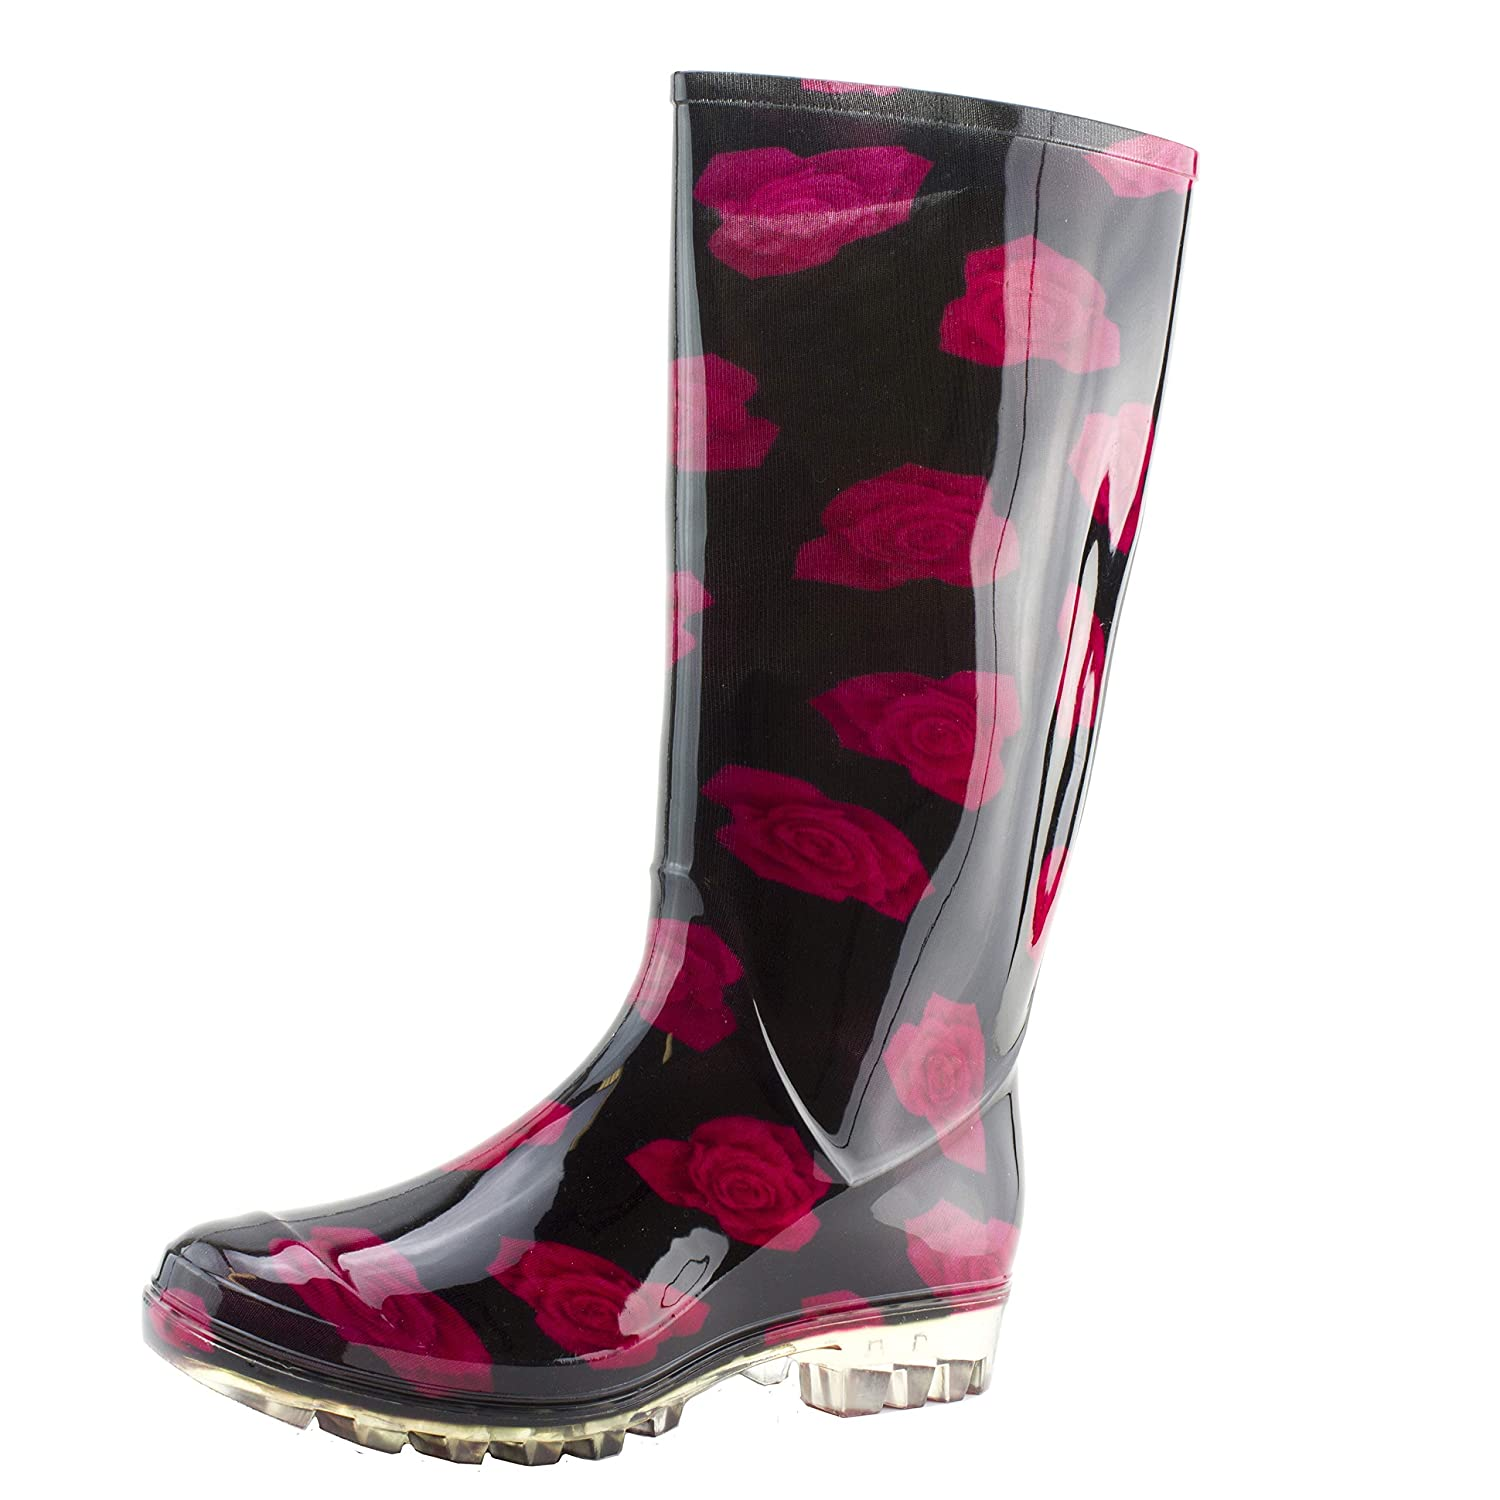 Black Red pink Easy Women's 14 Inch Flwer Print Four-Season Outdoor Rain Boots (Adults)